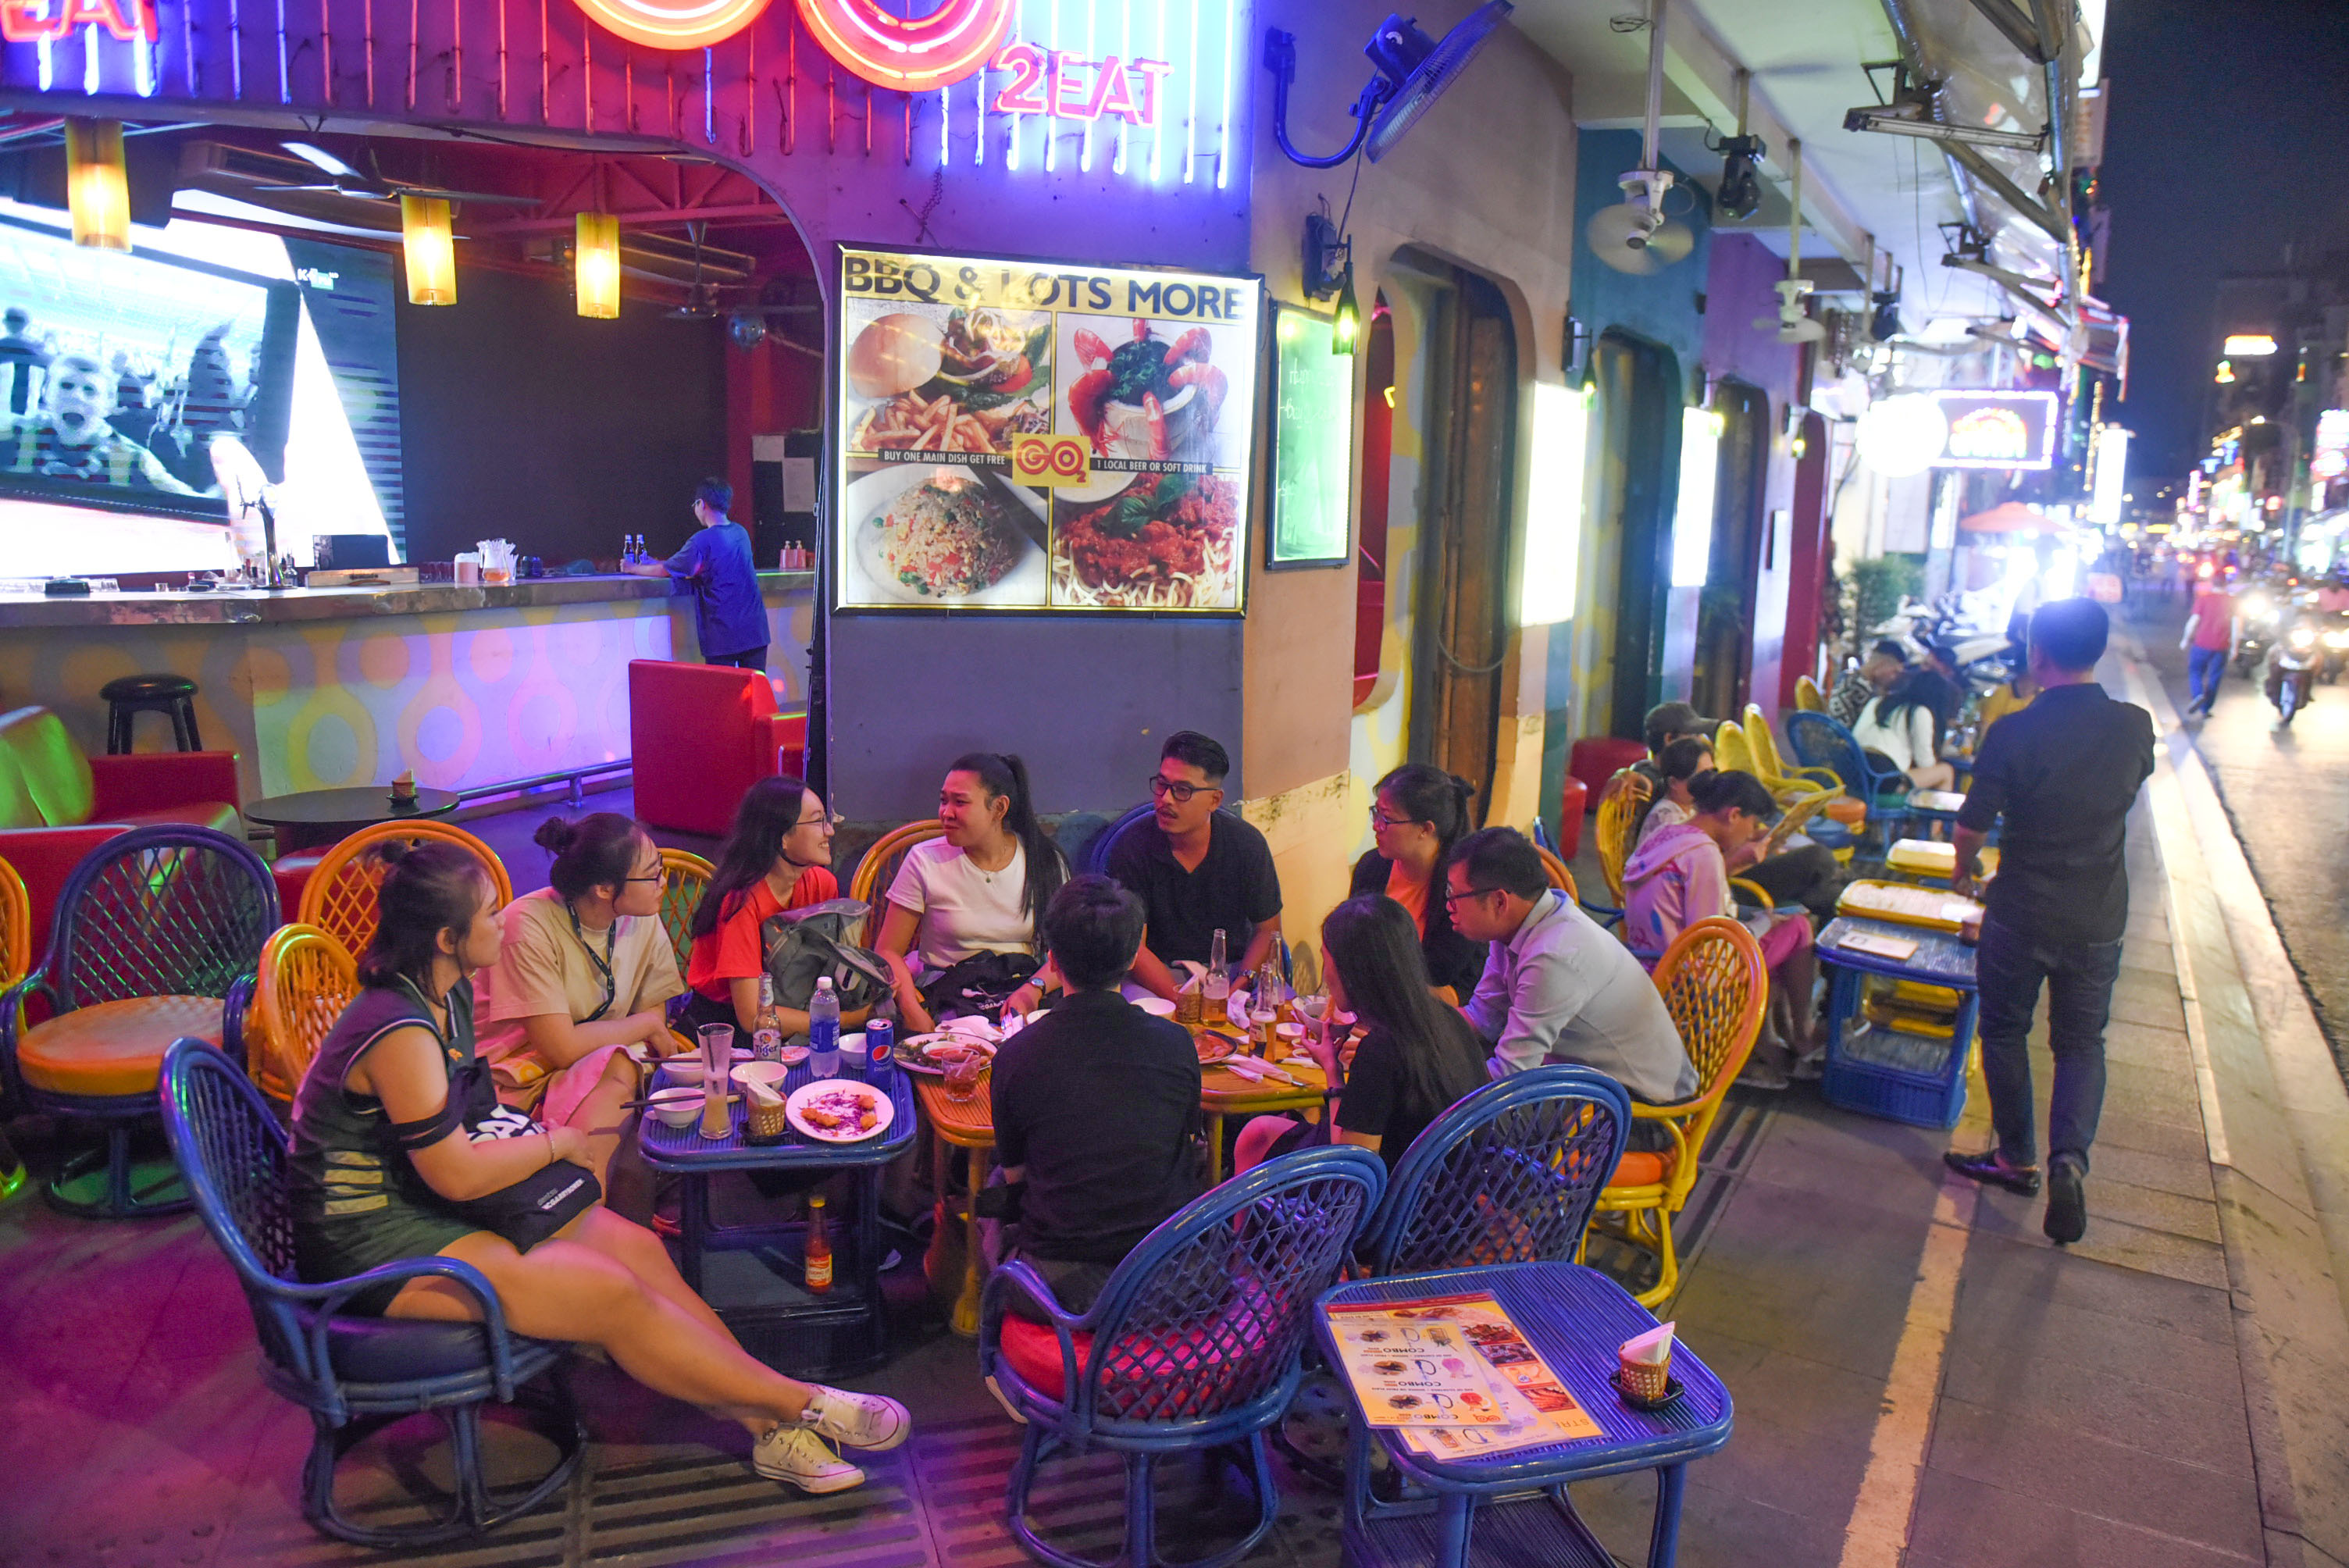 A group of patrons are enjoying their food at a restaurant on Bui Vien Street in Ho Chi Minh City's District 1 on September 8, 2020. Photo: Quang Dinh / Tuoi Tre